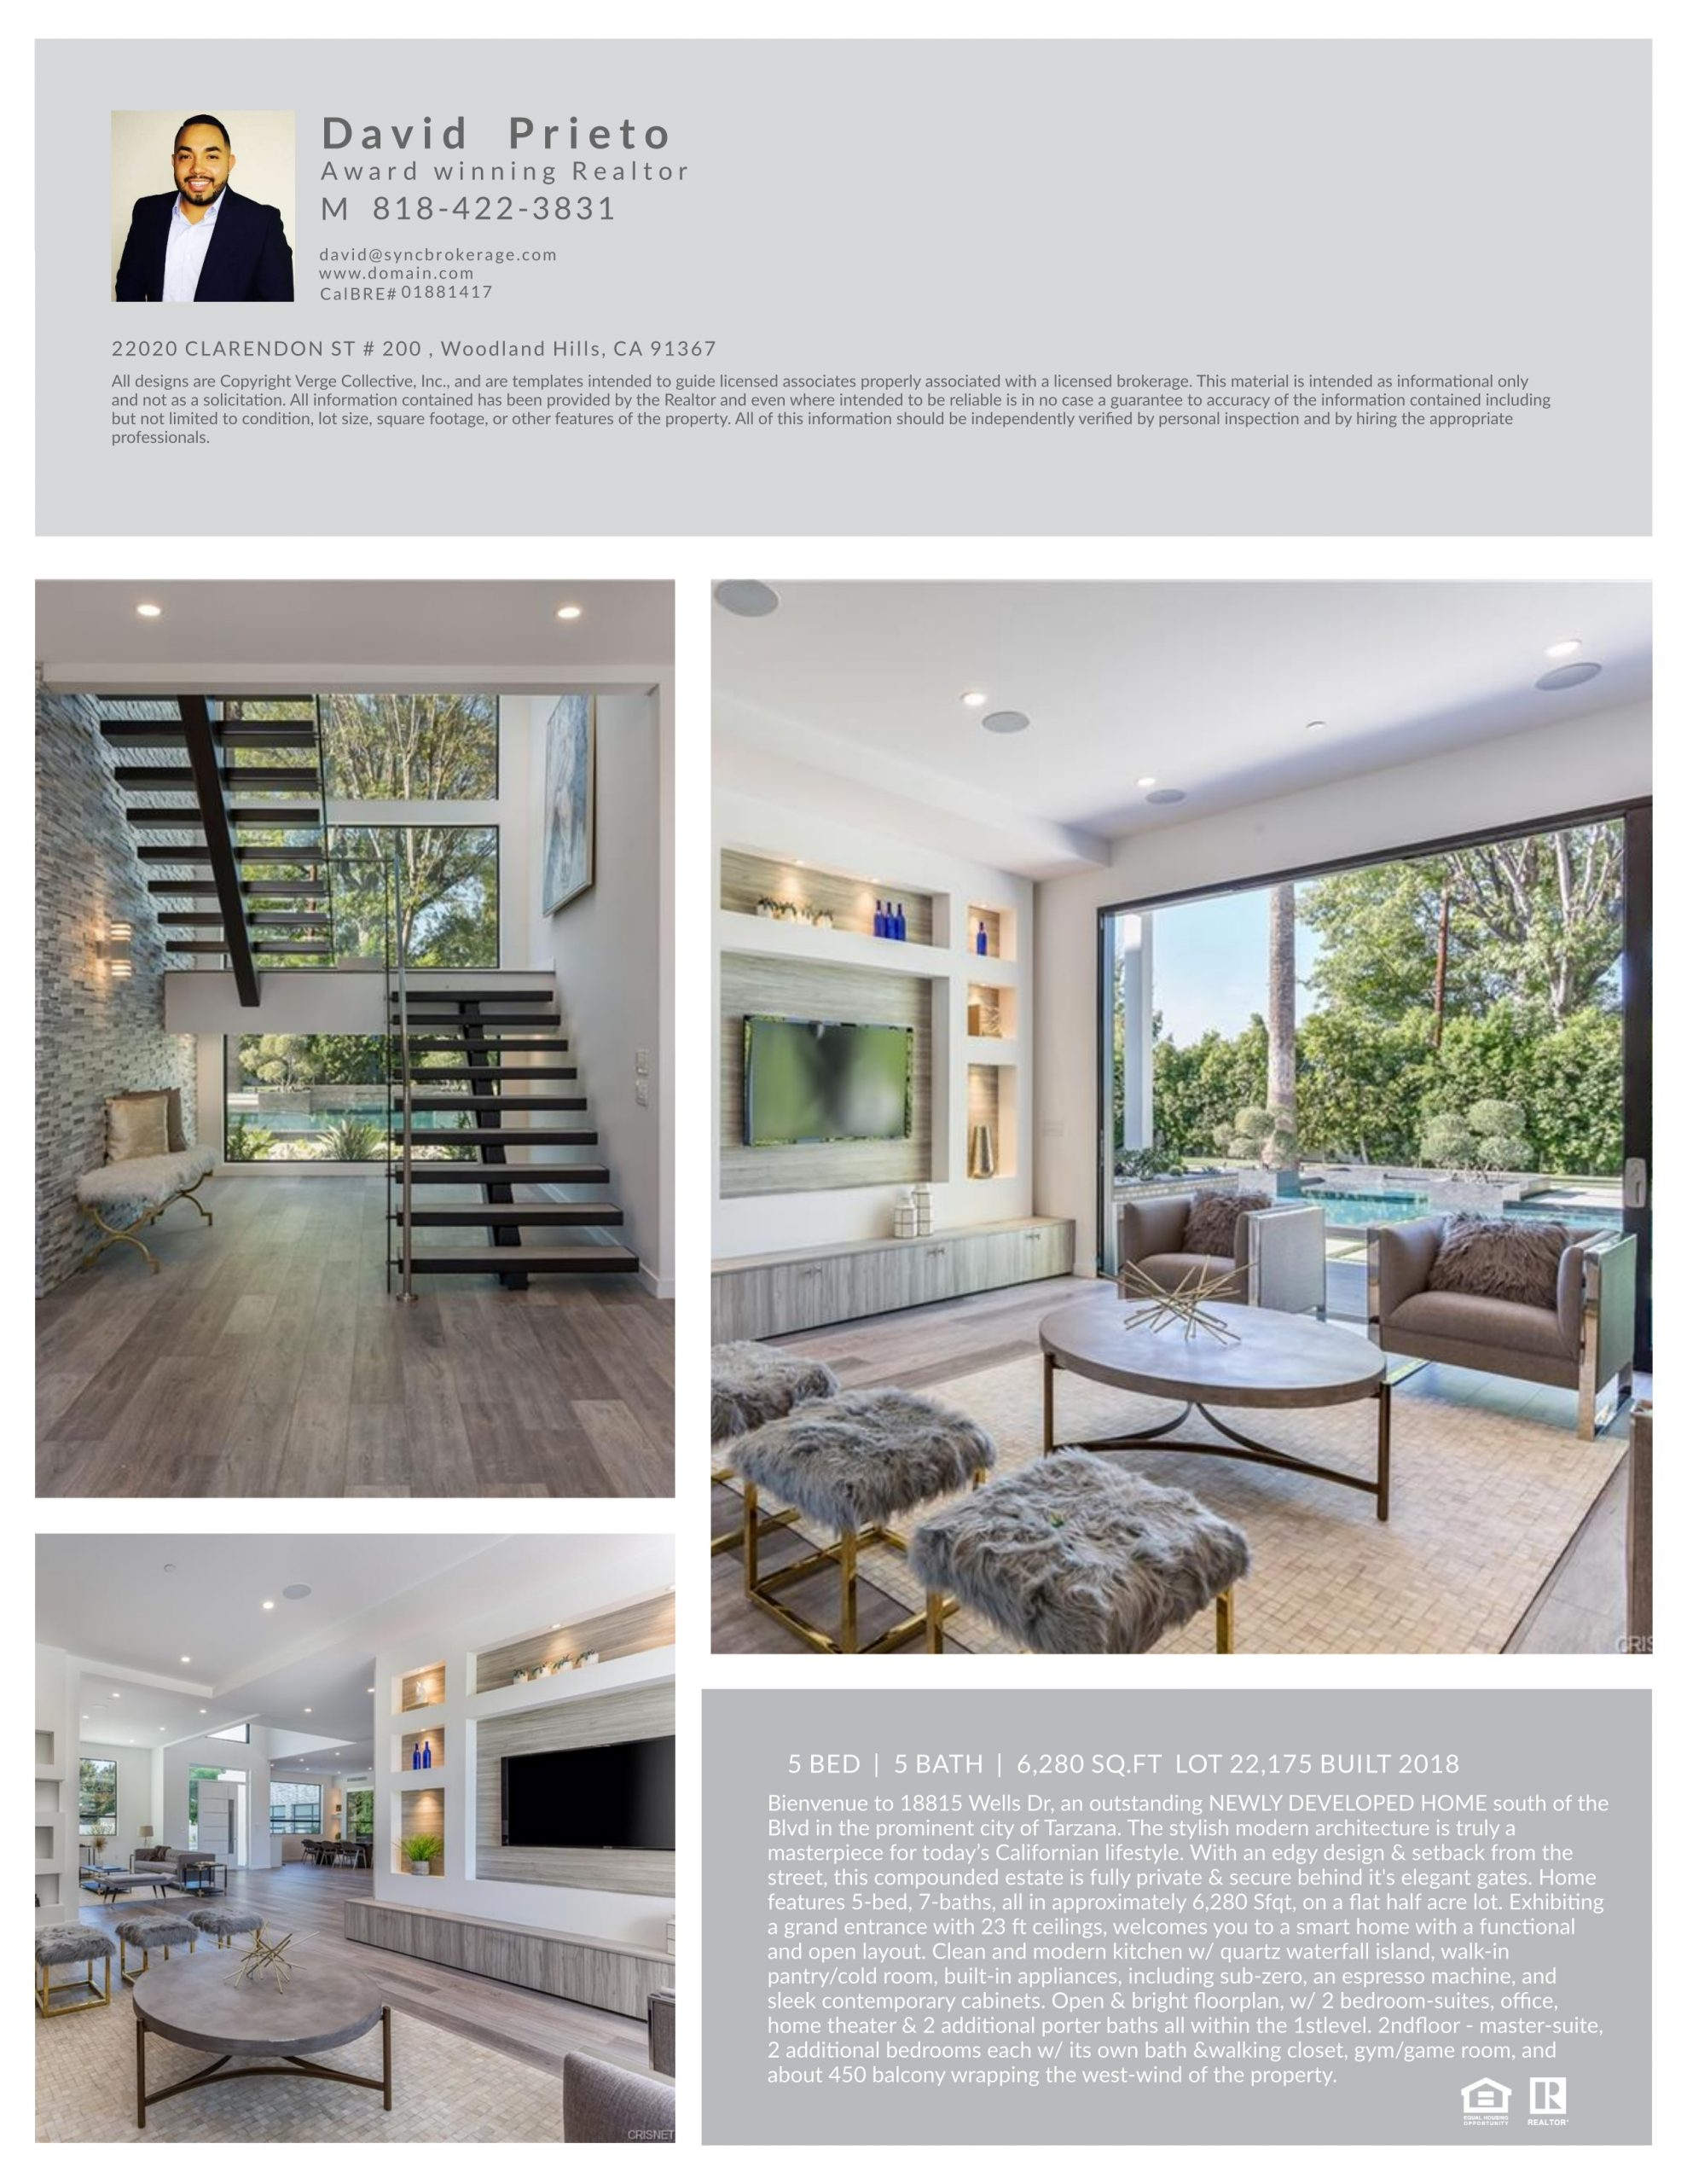 open house friday 9 28 18 from 2 6pm at wells dr in tarzana ca by david prieto at syn brokerage woodland hills